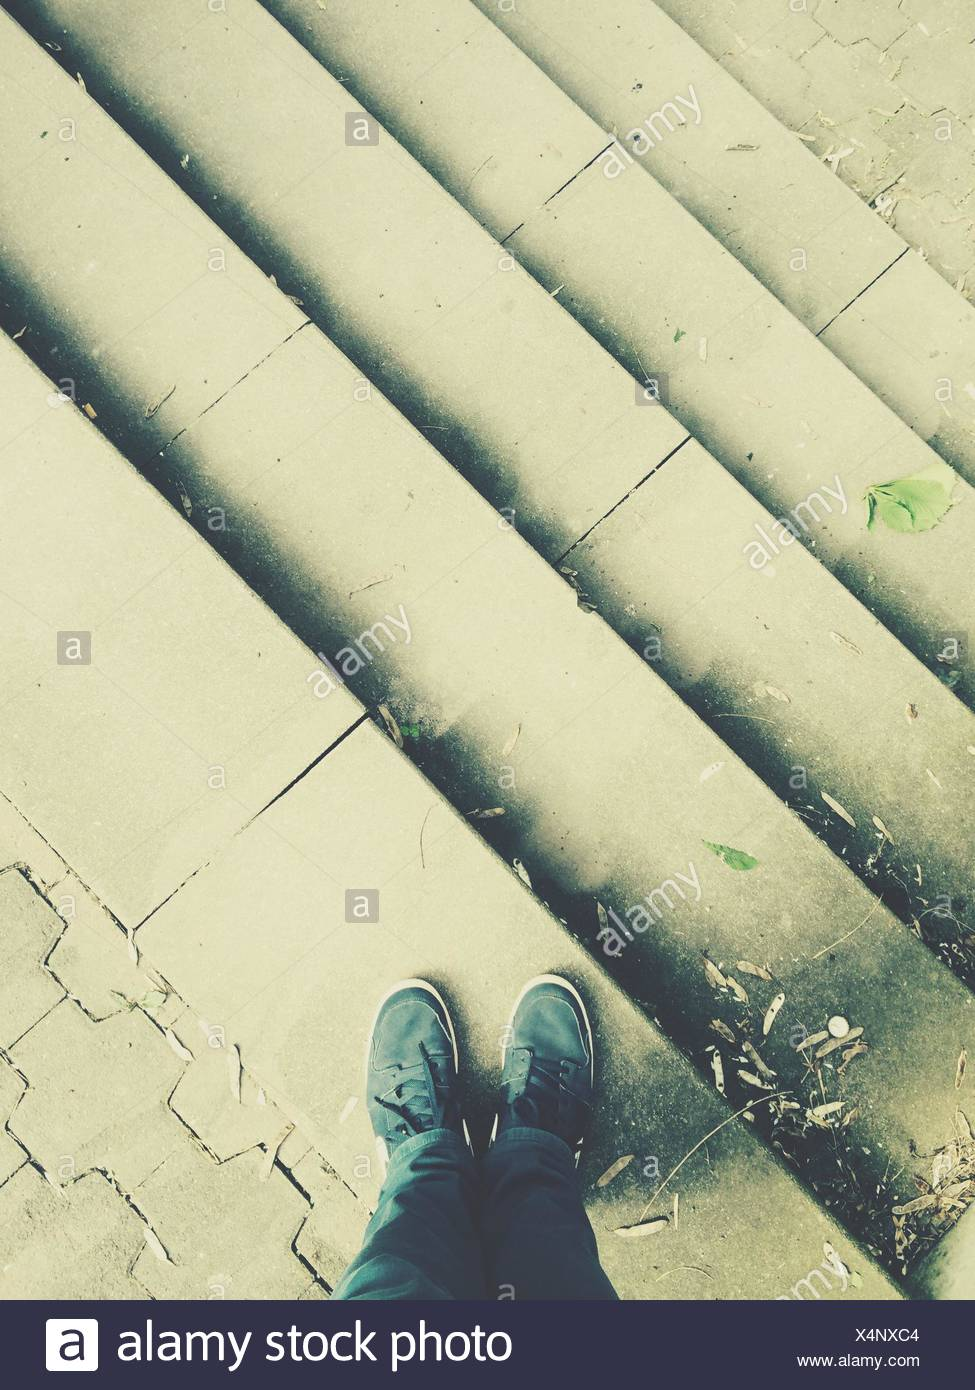 High Angle View Of Man Standing On Steps - Stock Image